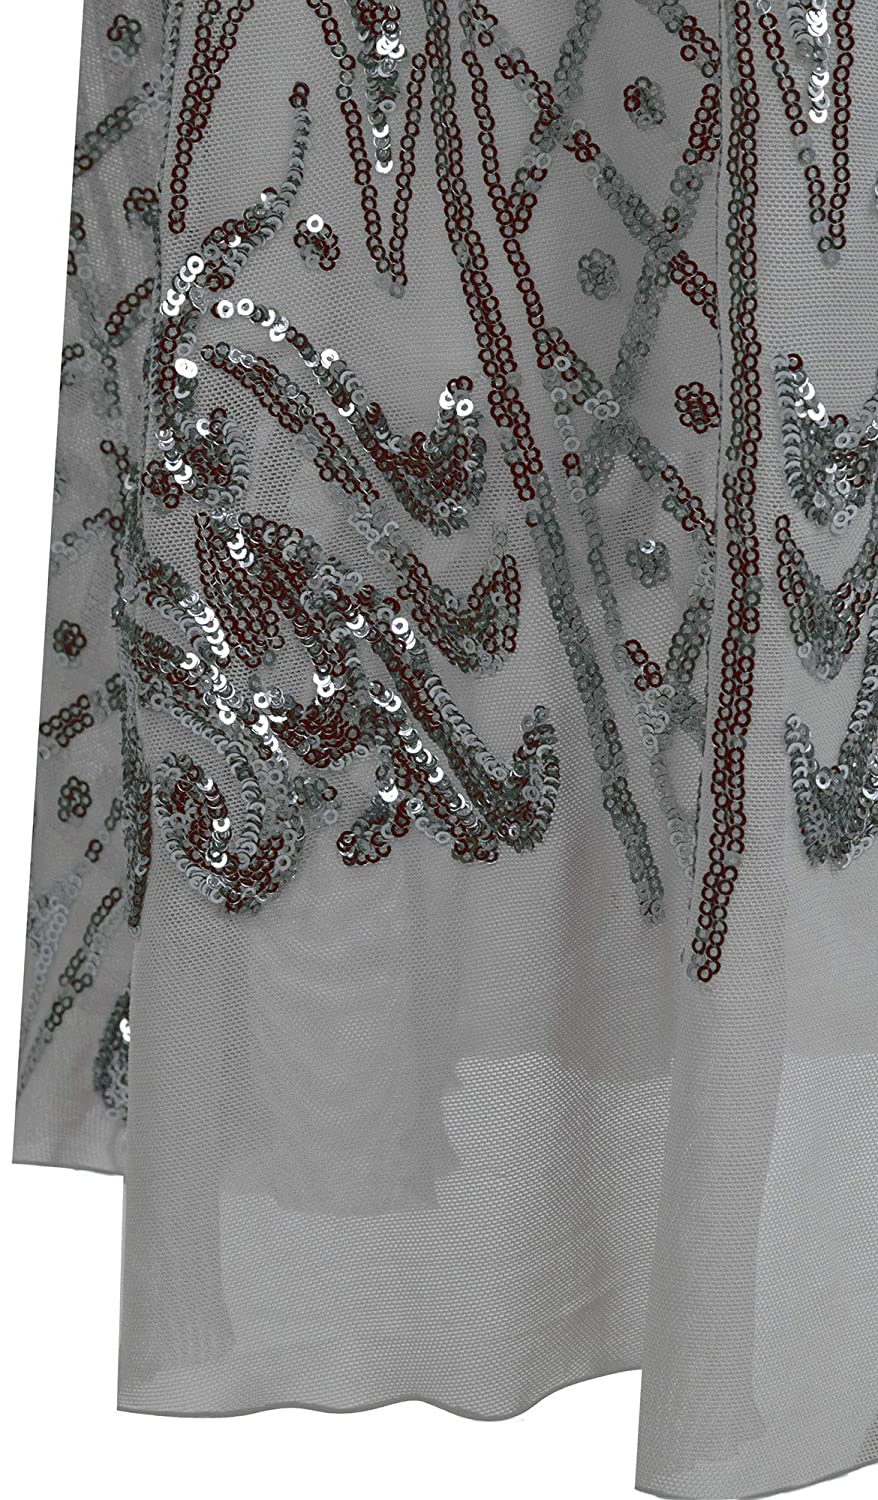 Angel-fashions Womens Square Collar Silver Sequin Floral Pattern Wrap Evening Dress